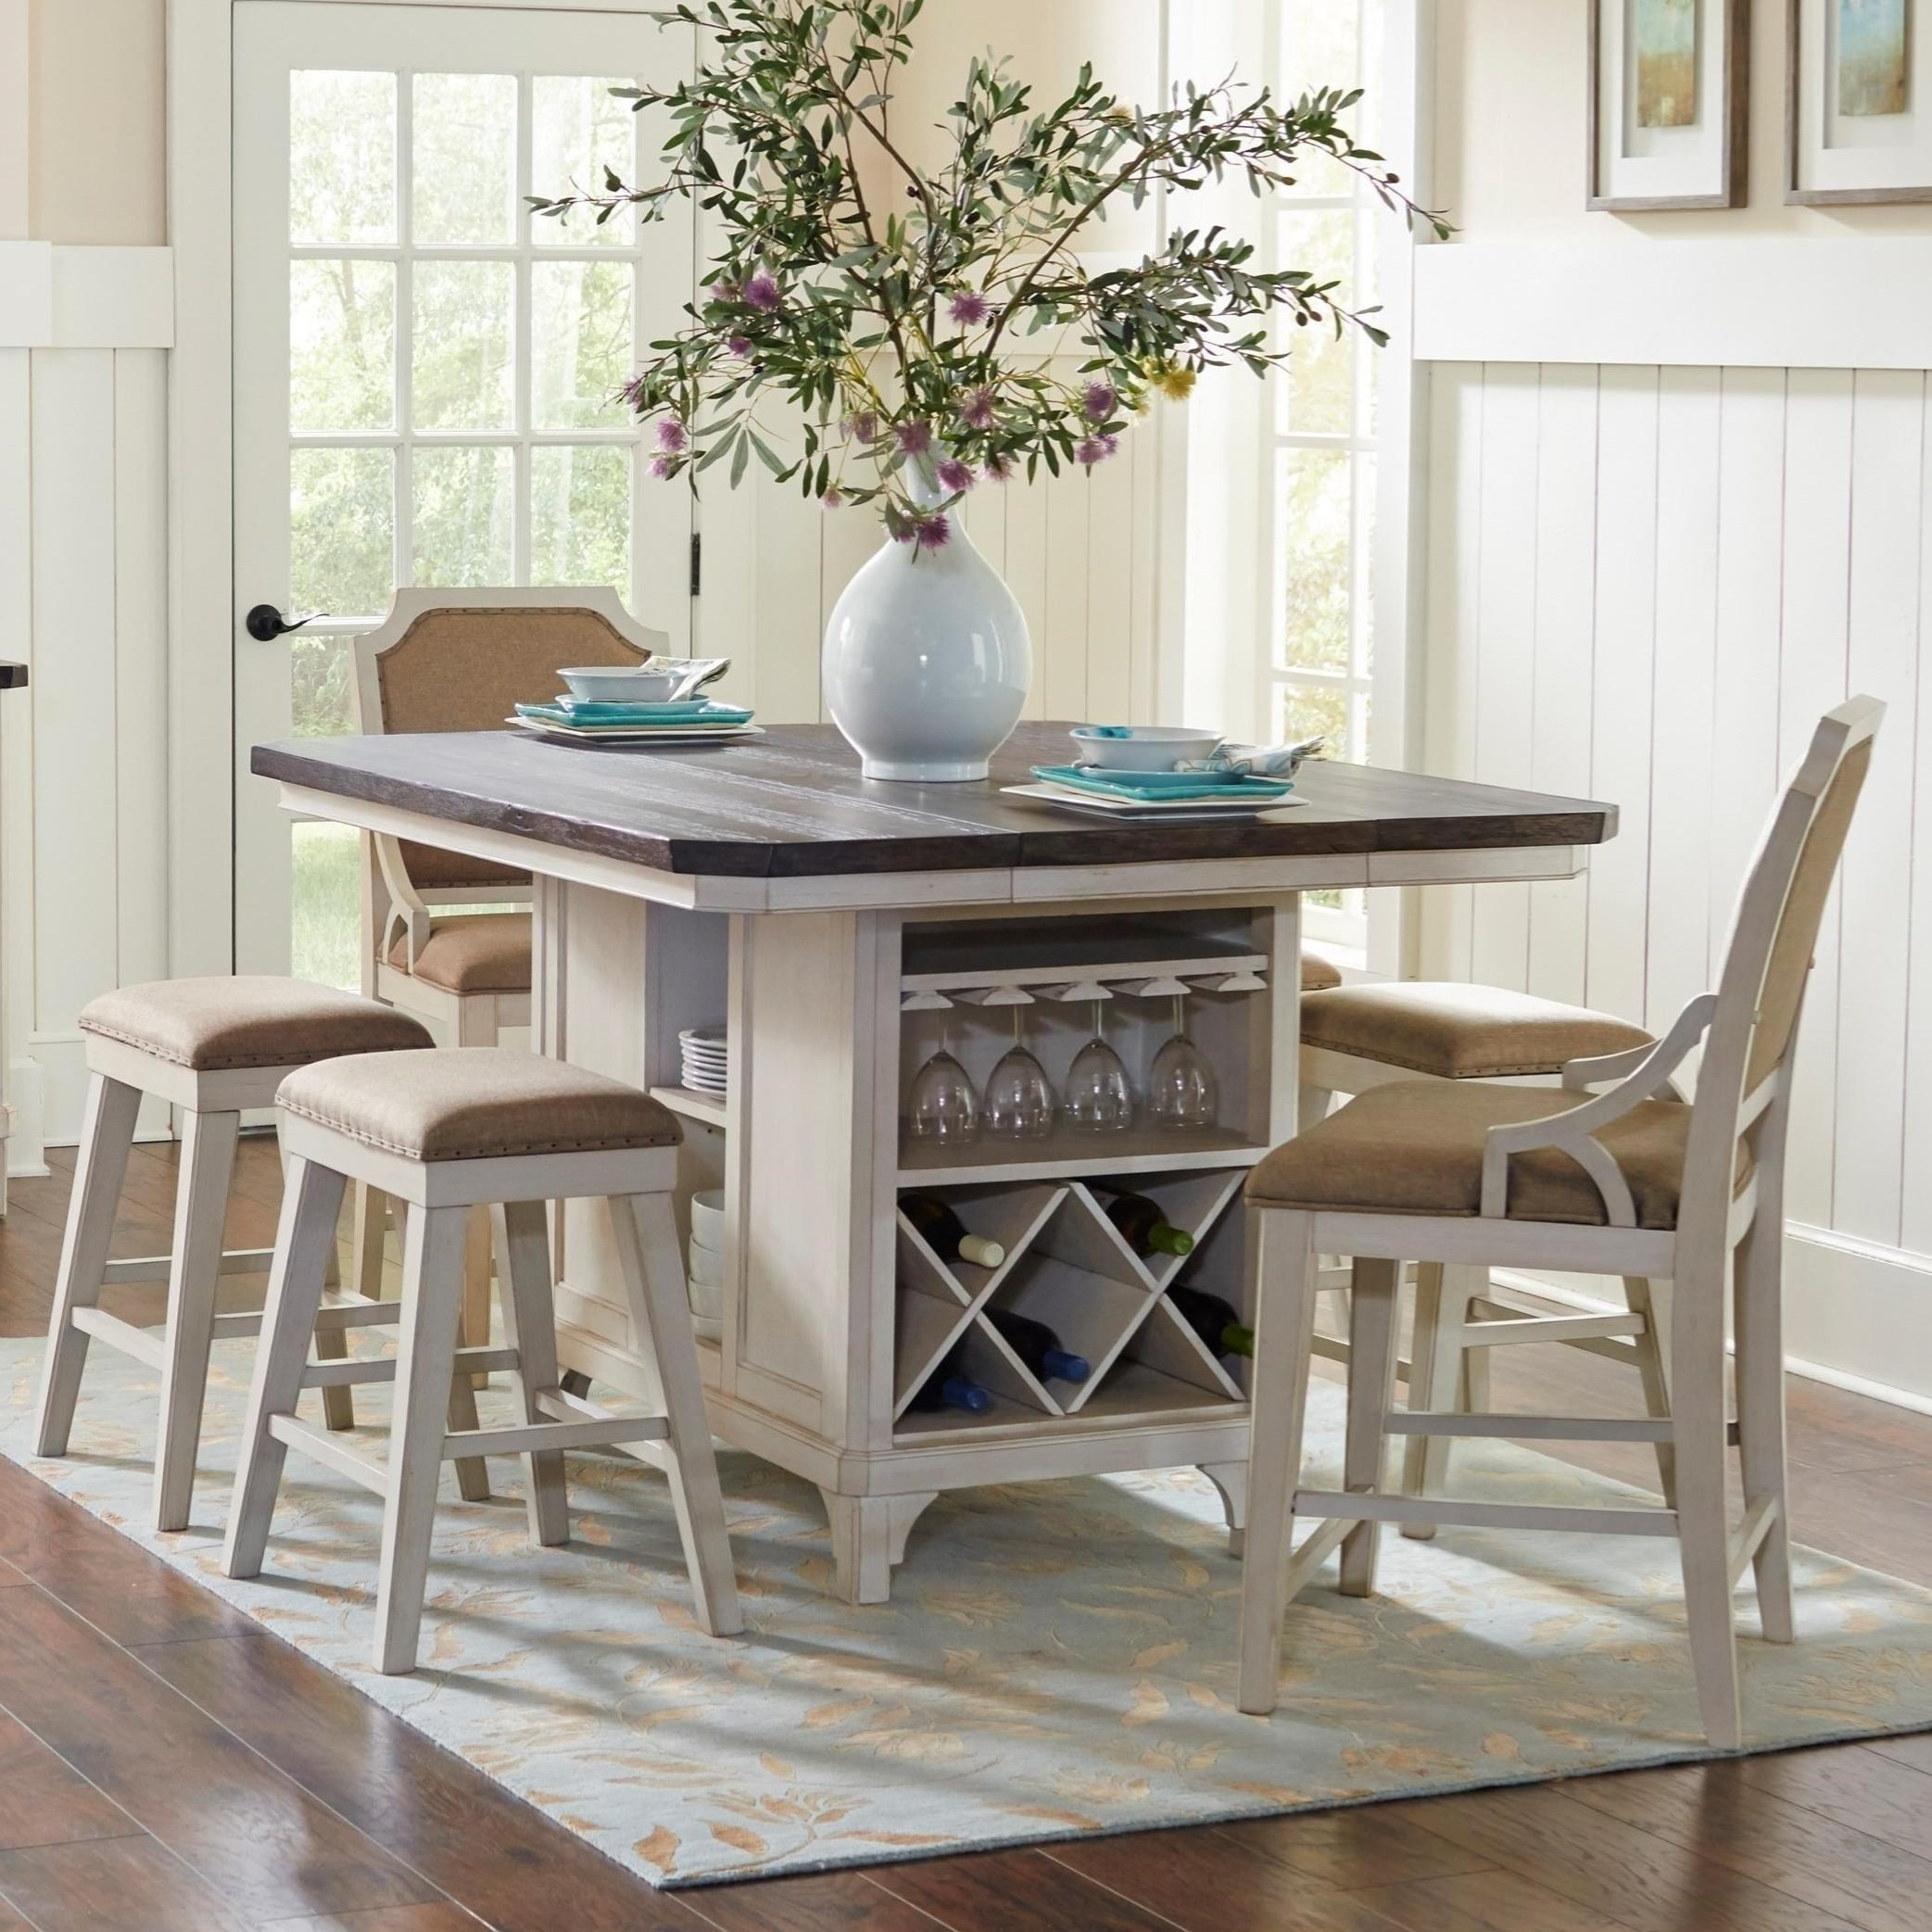 Avalon Furniture Mystic Cay 7 Piece Kitchen Island Table Set